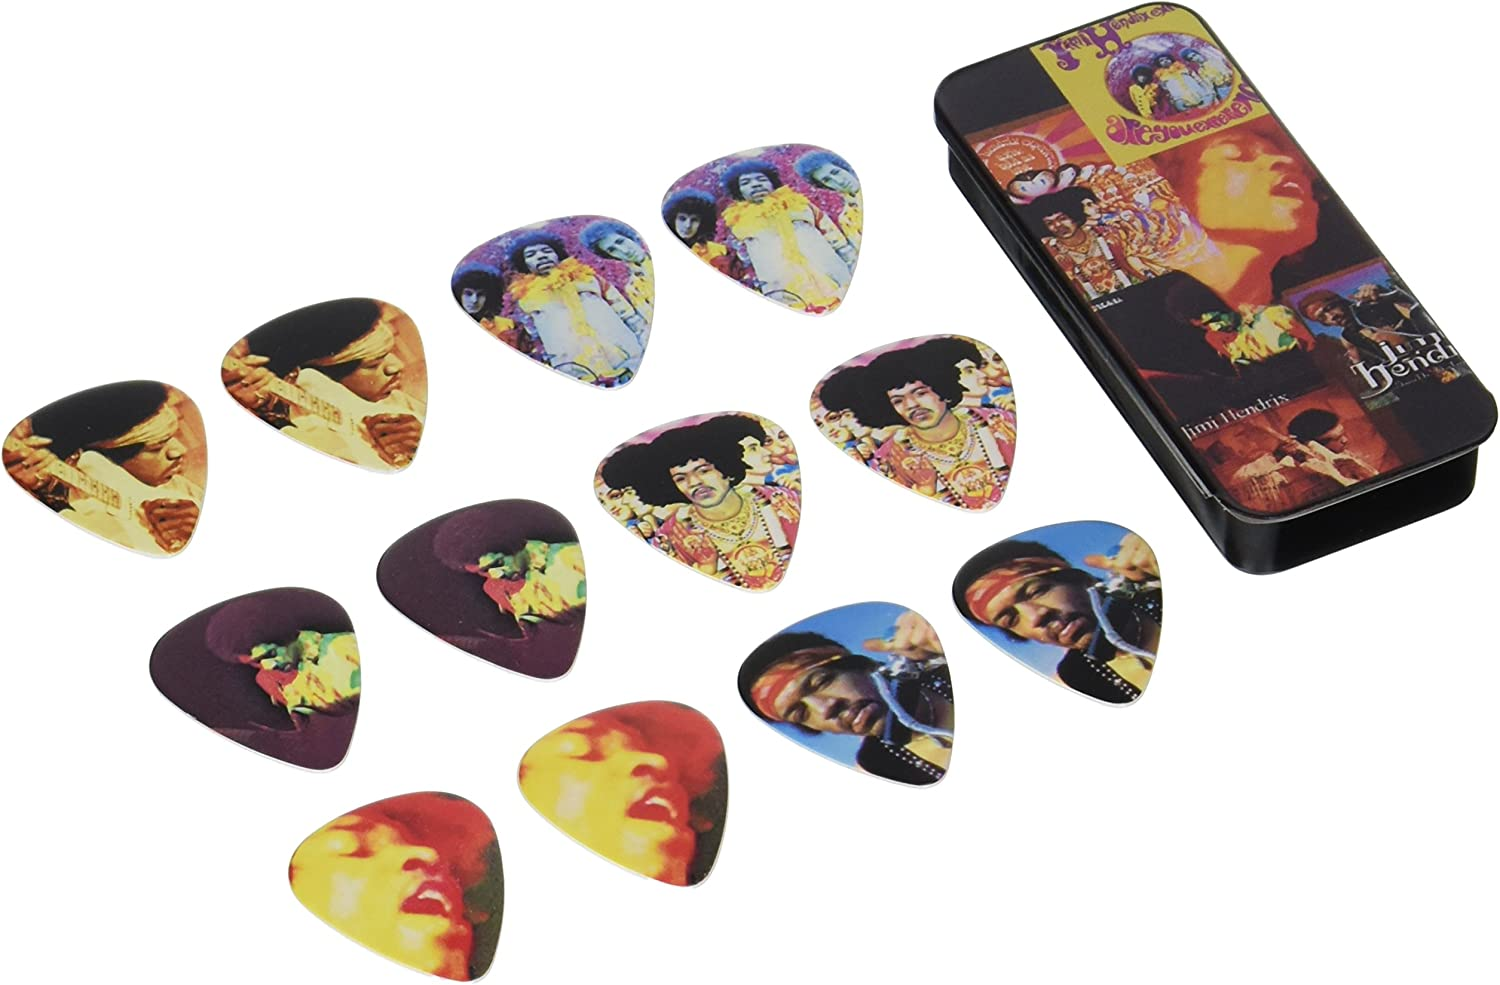 New stash your picks or small items PICKS NOT INCLUDED Jimi Hendrix EMPTY TIN